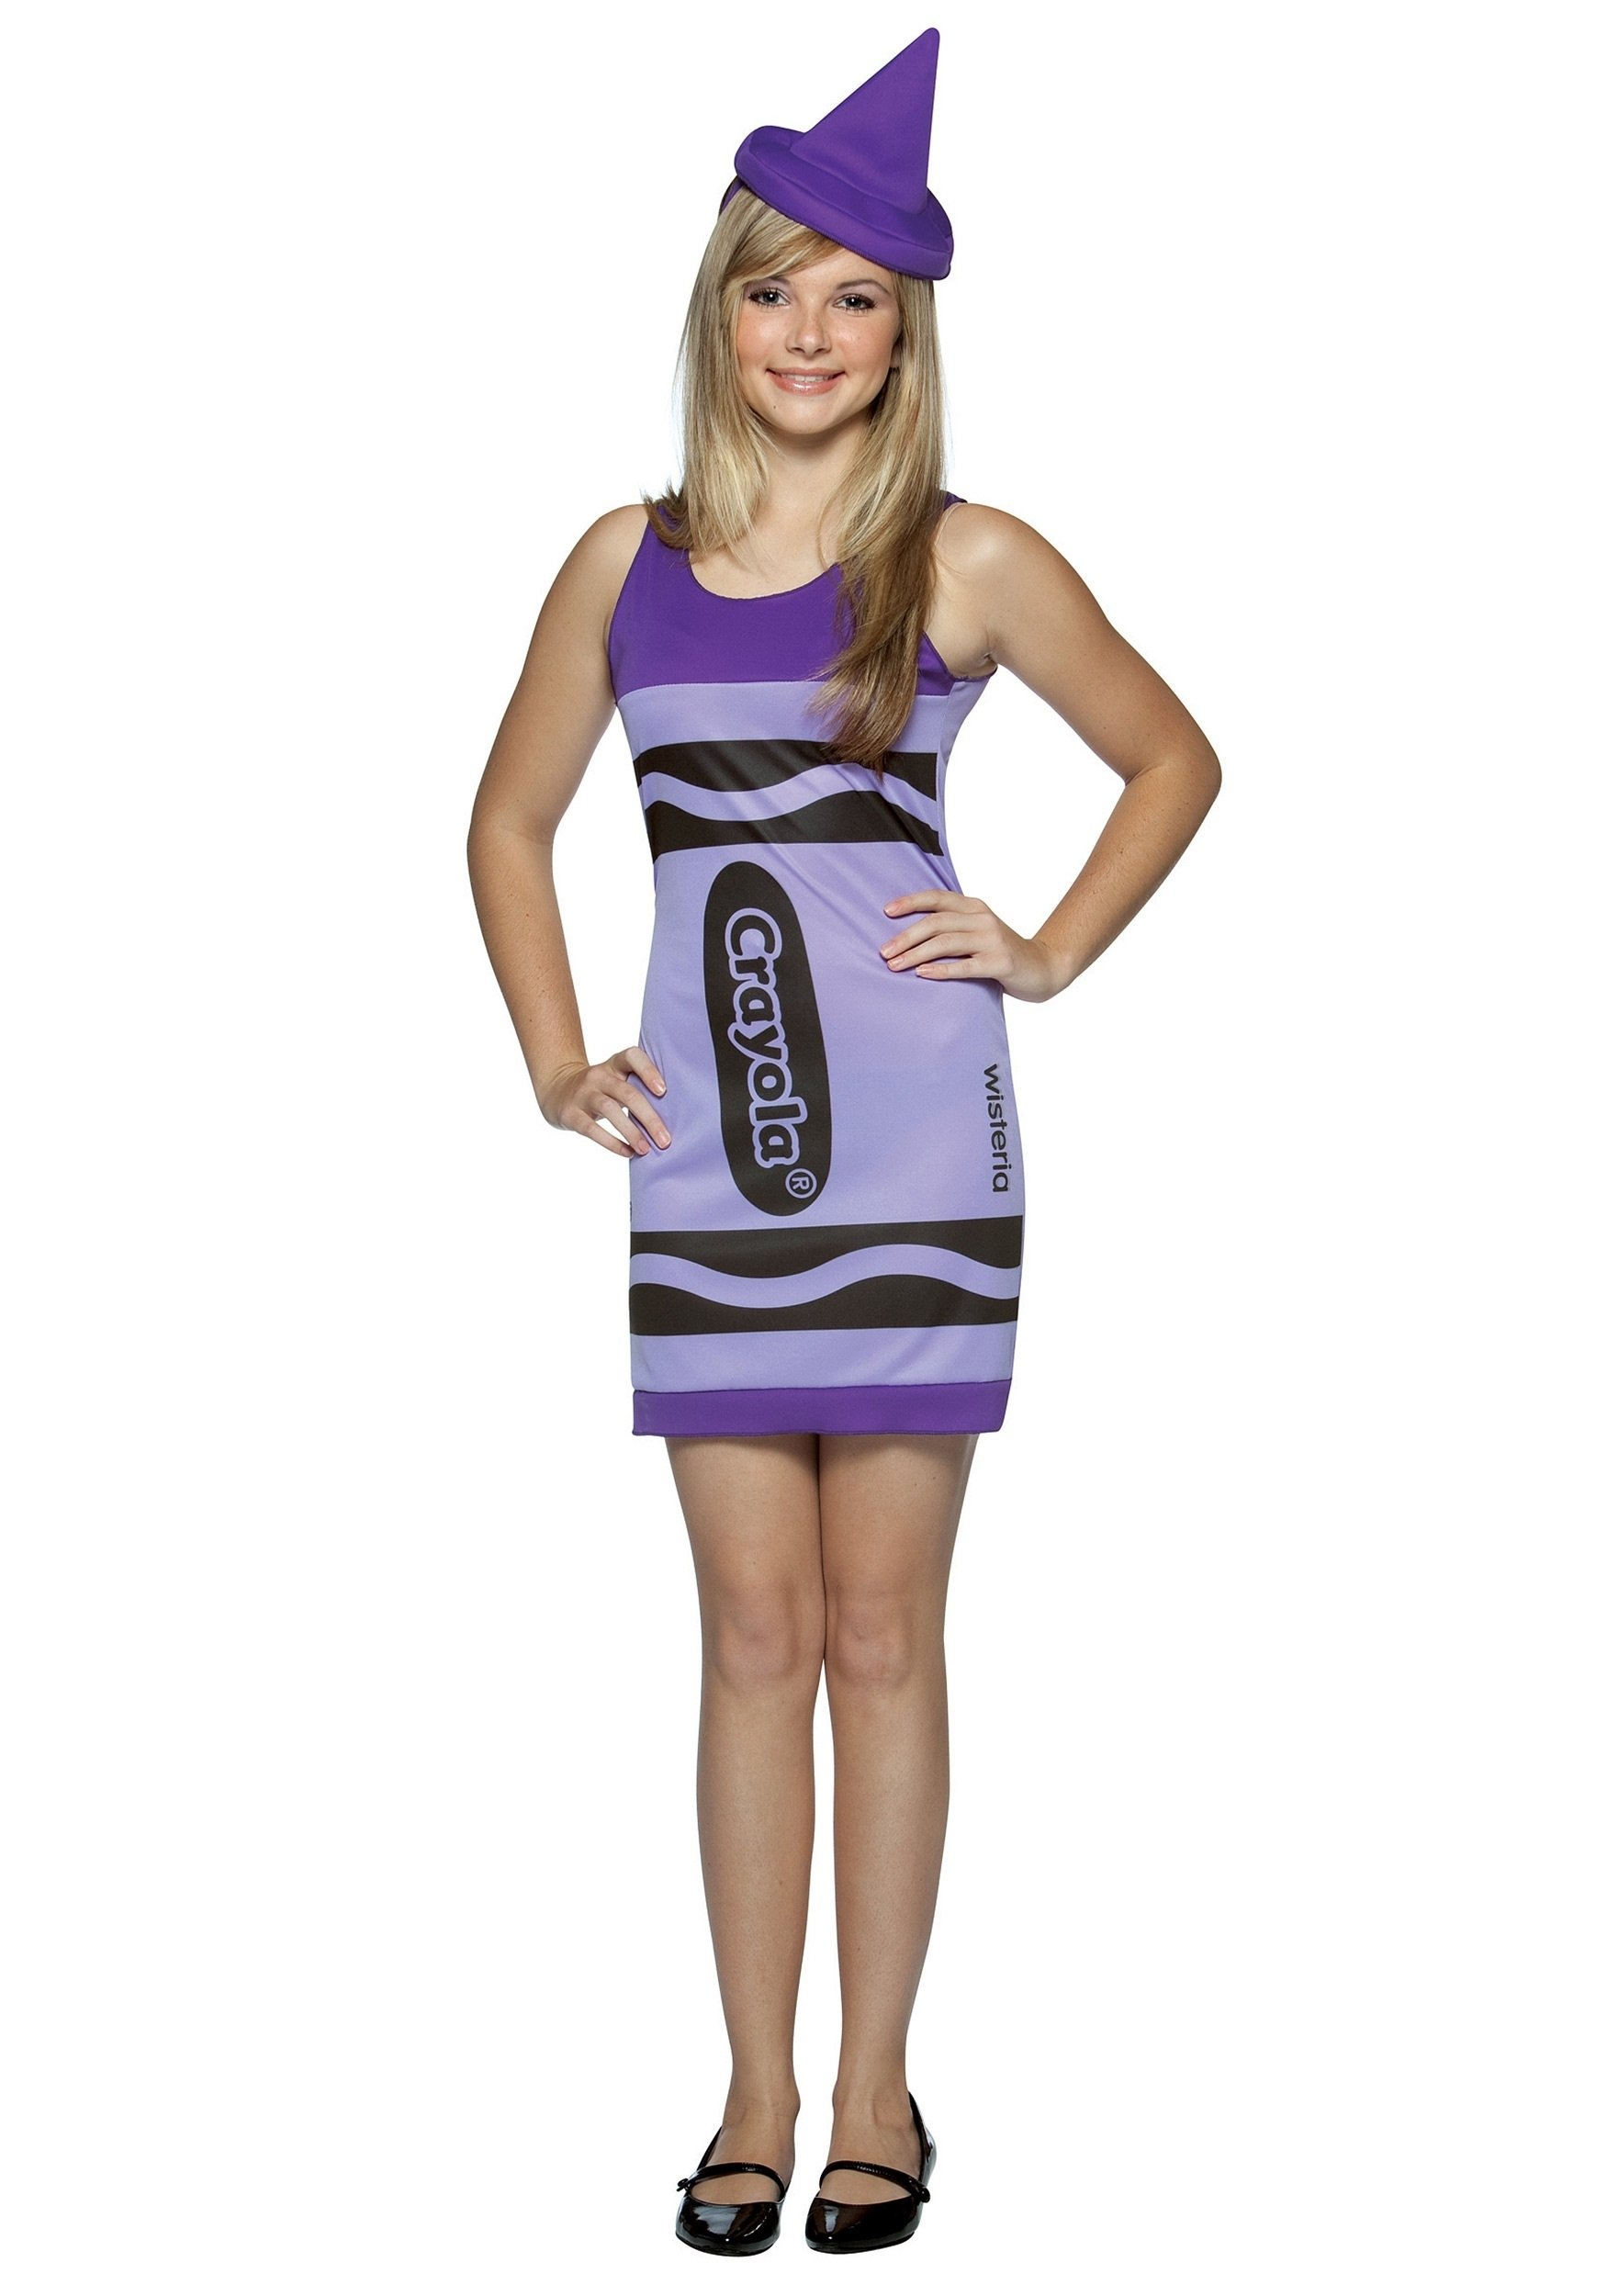 10 Beautiful Cute Costume Ideas For Girls wisteria teen crayon costume halloween costume ideas for teens 6 2020